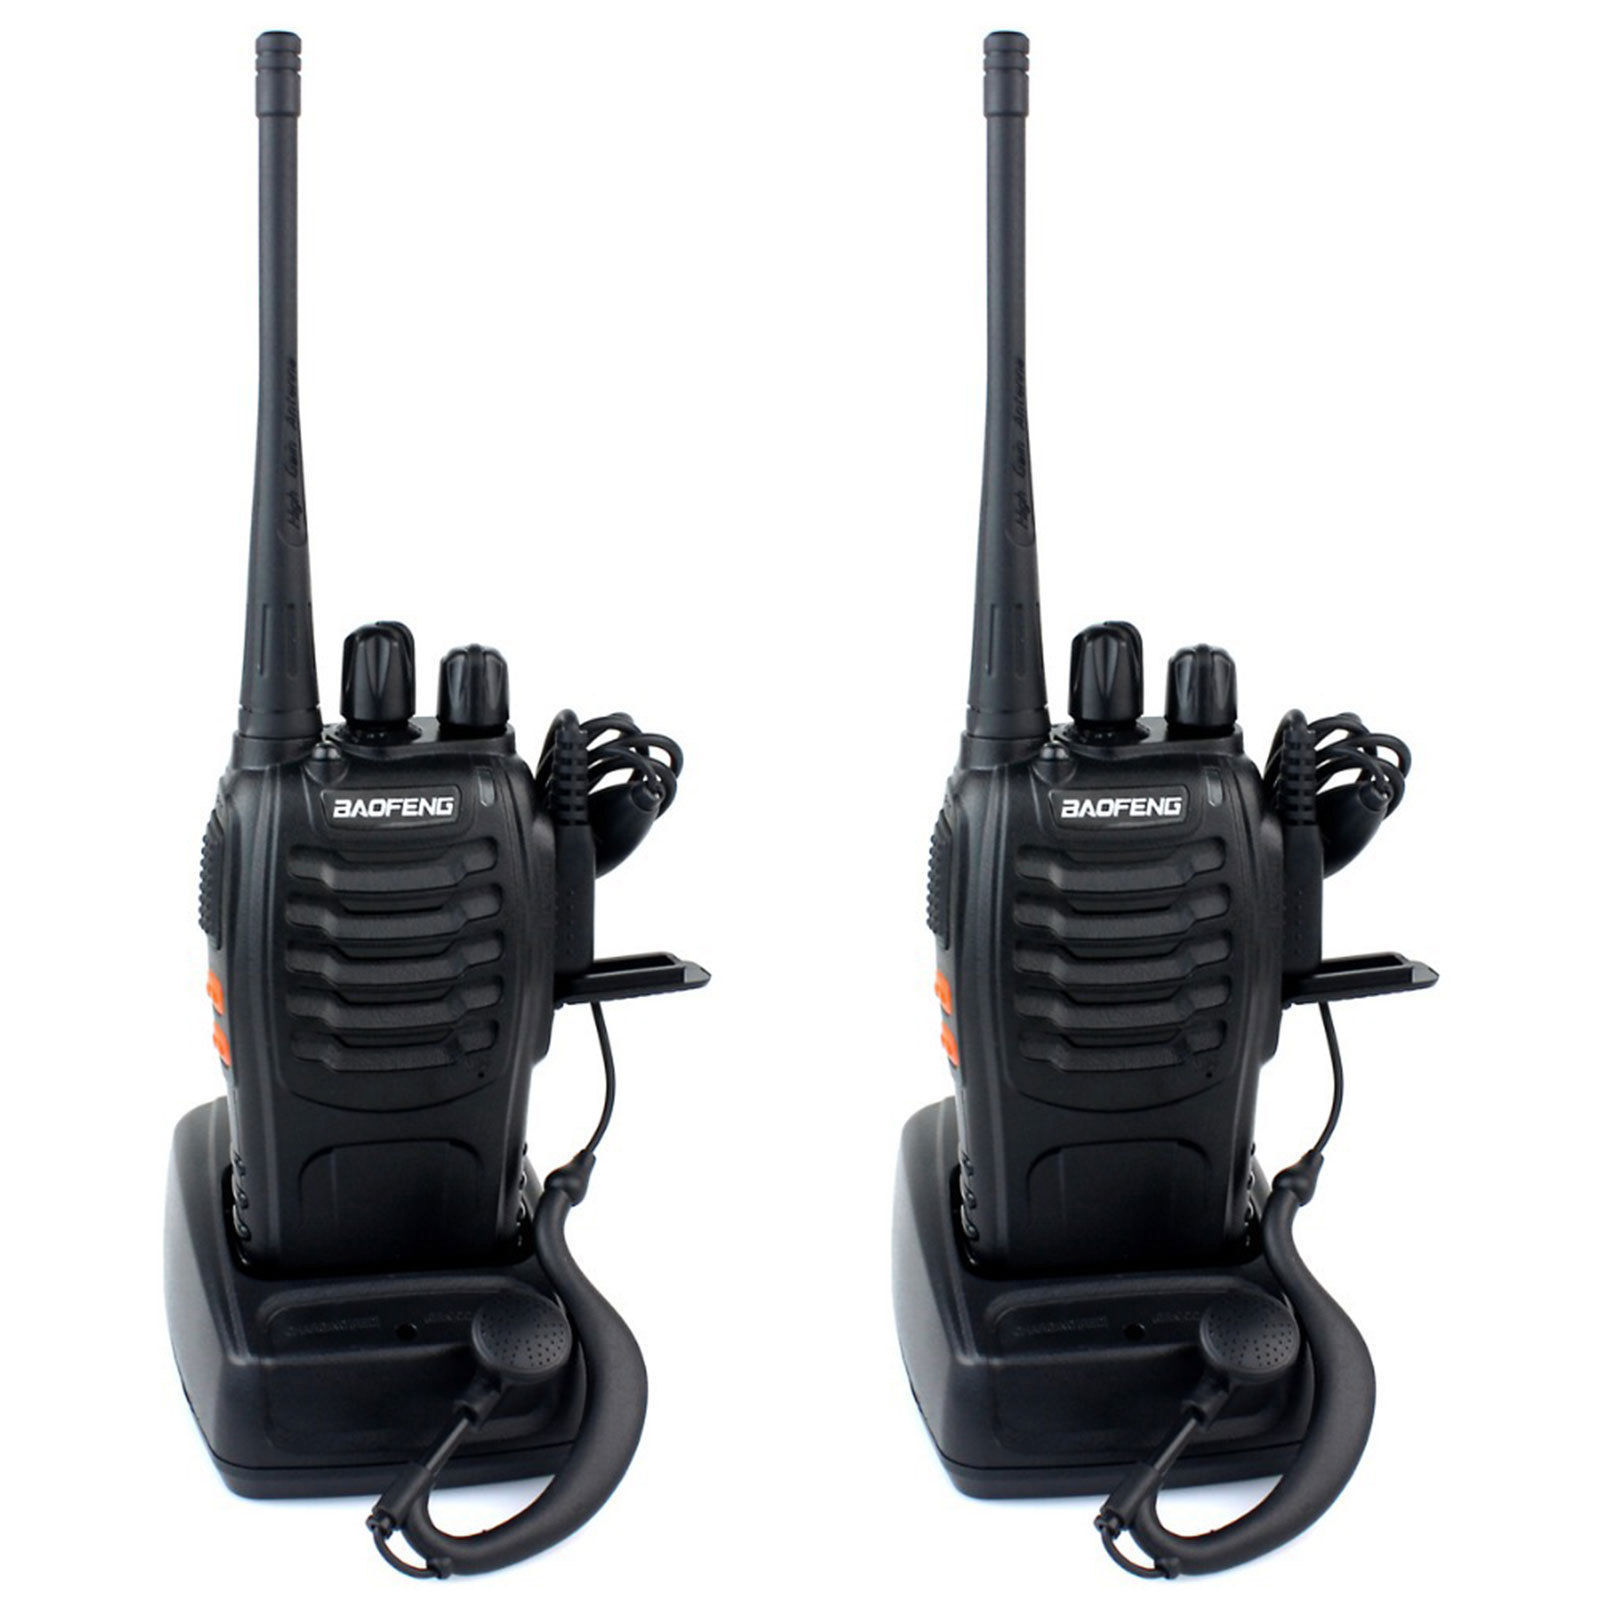 2019 Moins Cher BAOFENG 888S Talkie-walkie 5W 16CH UHF 400-470MHz BF-888S Interphone BaoFeng BF-888S Deux radio bidirectionnelle